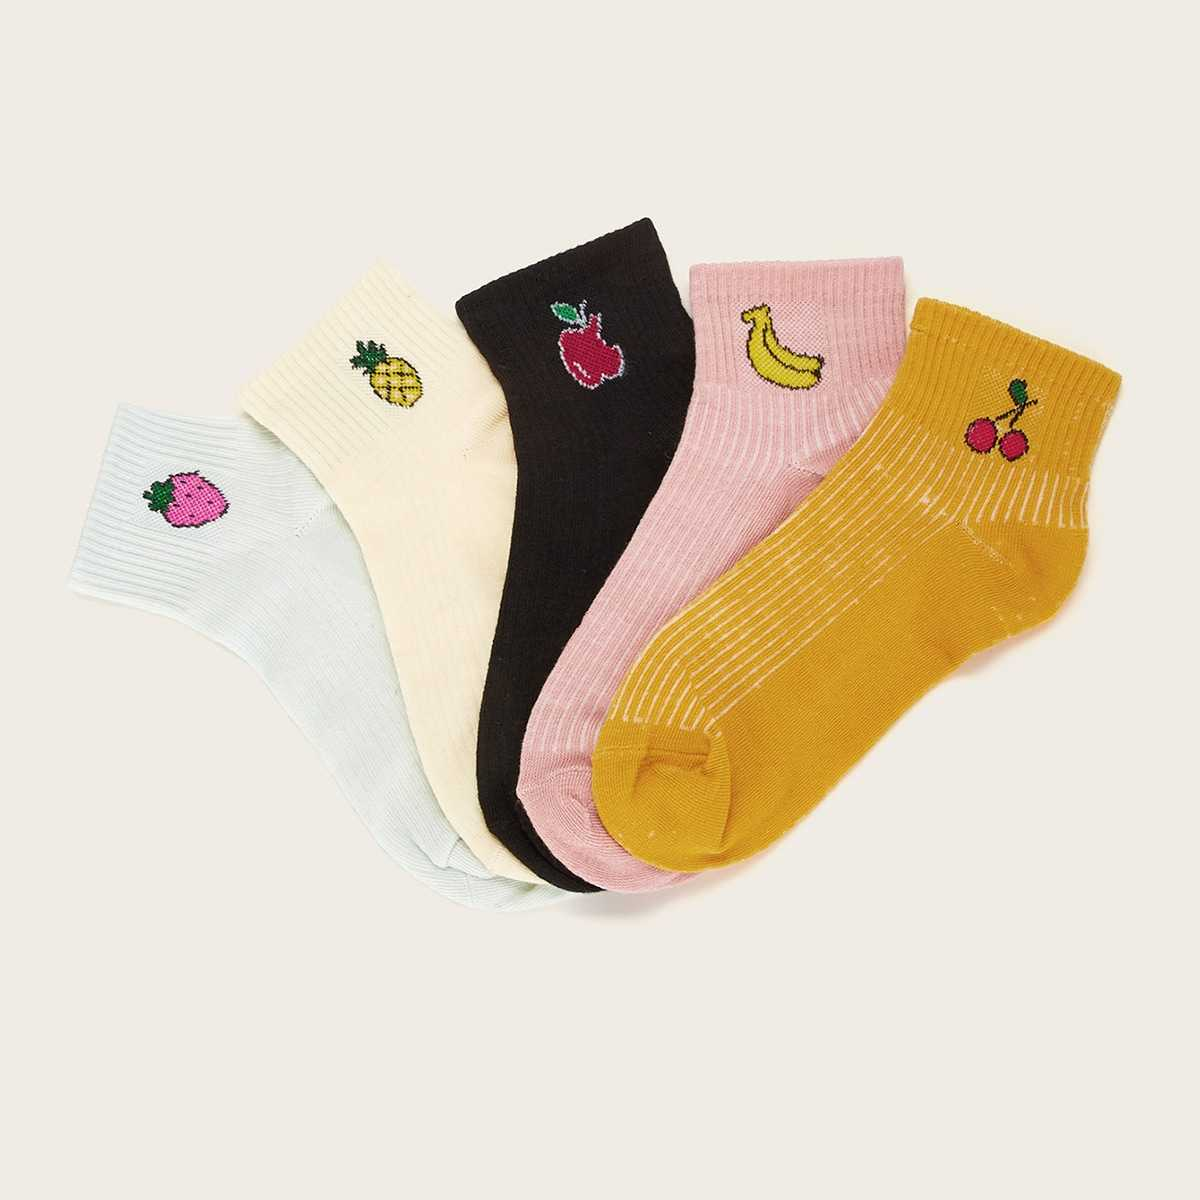 Apple & Banana Pattern Ankle Socks 5pairs in Multicolor by ROMWE on GOOFASH